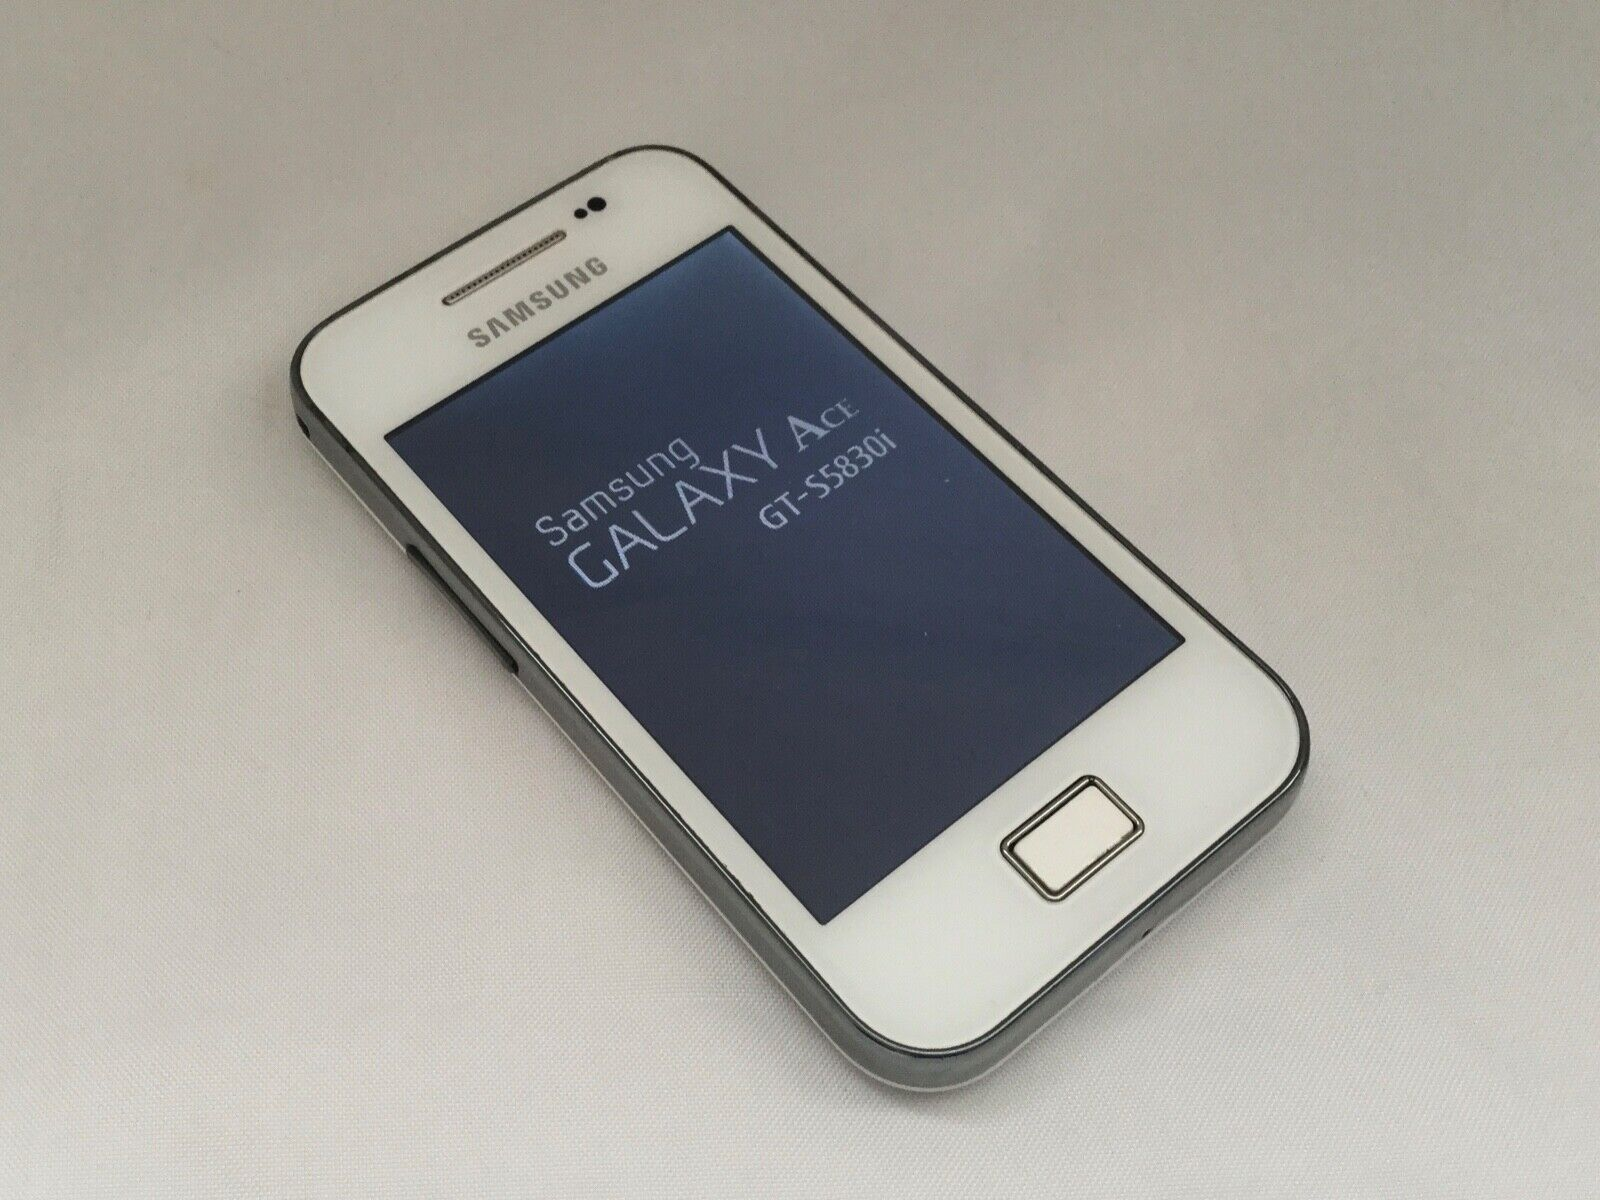 Android Phone - WHITE SAMSUNG GALAXY ACE S5830i UNLOCKED ANDROID MOBILE SMART PHONE 99p AUCTION